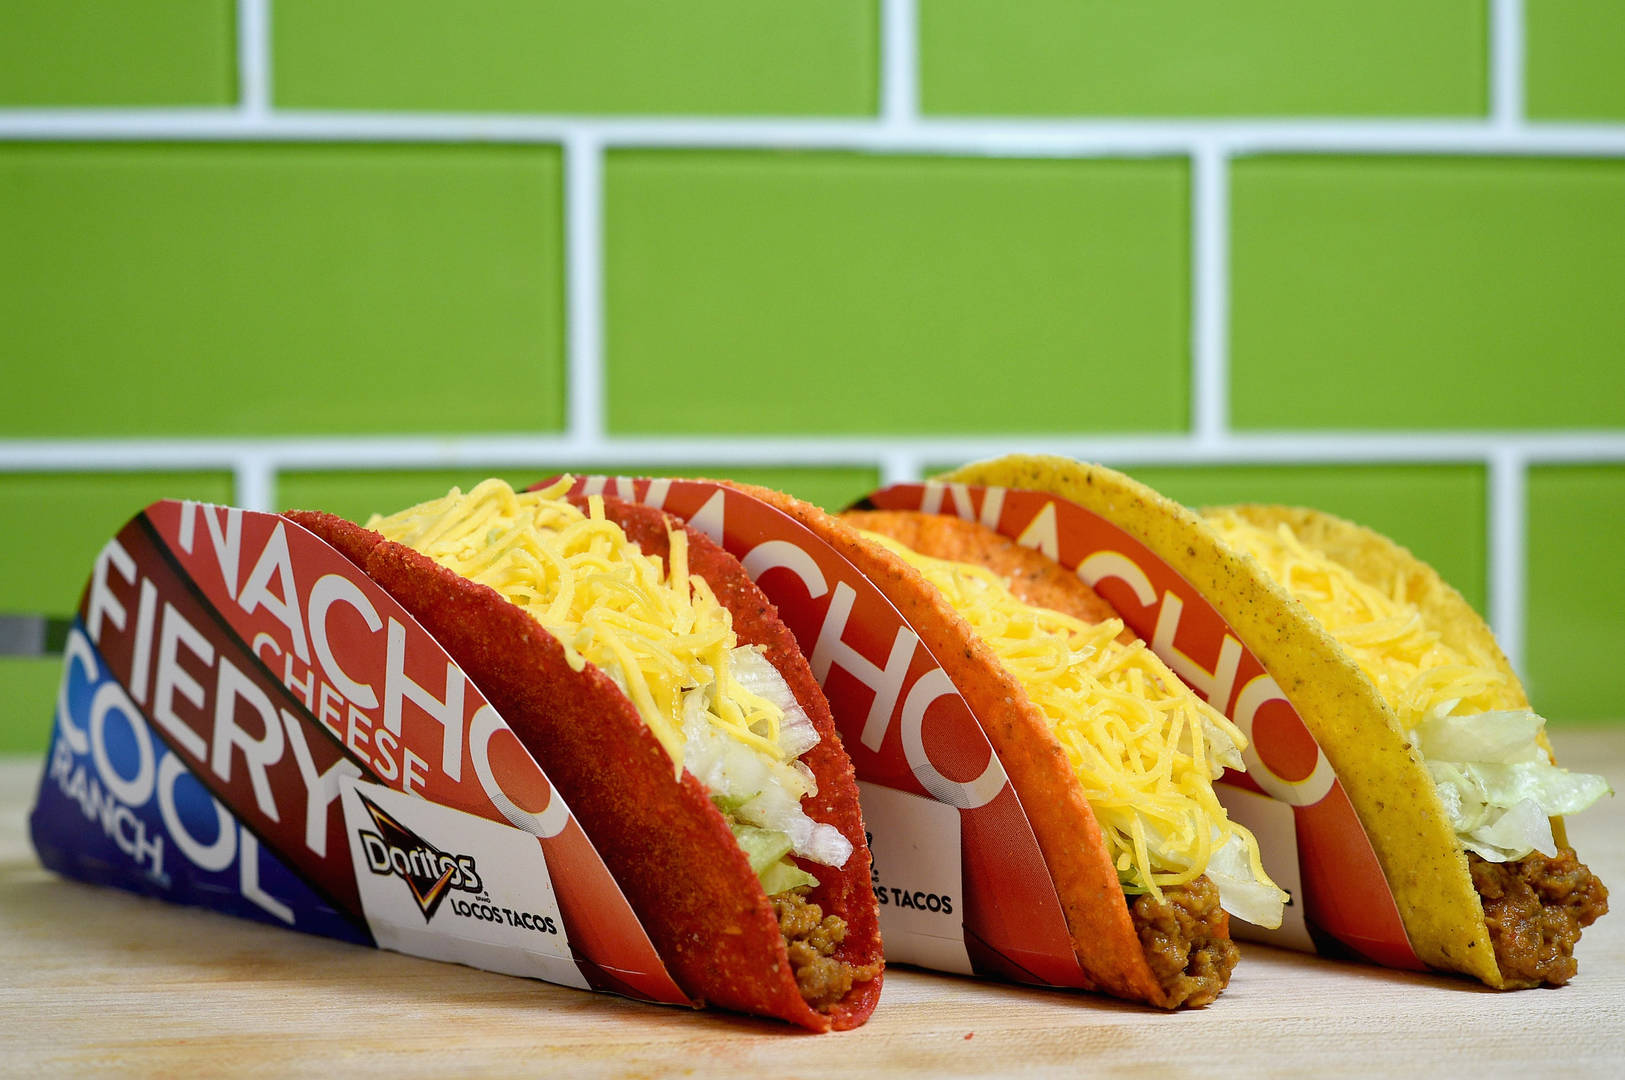 Enjoy Free Tacos on National Taco (John's) Day